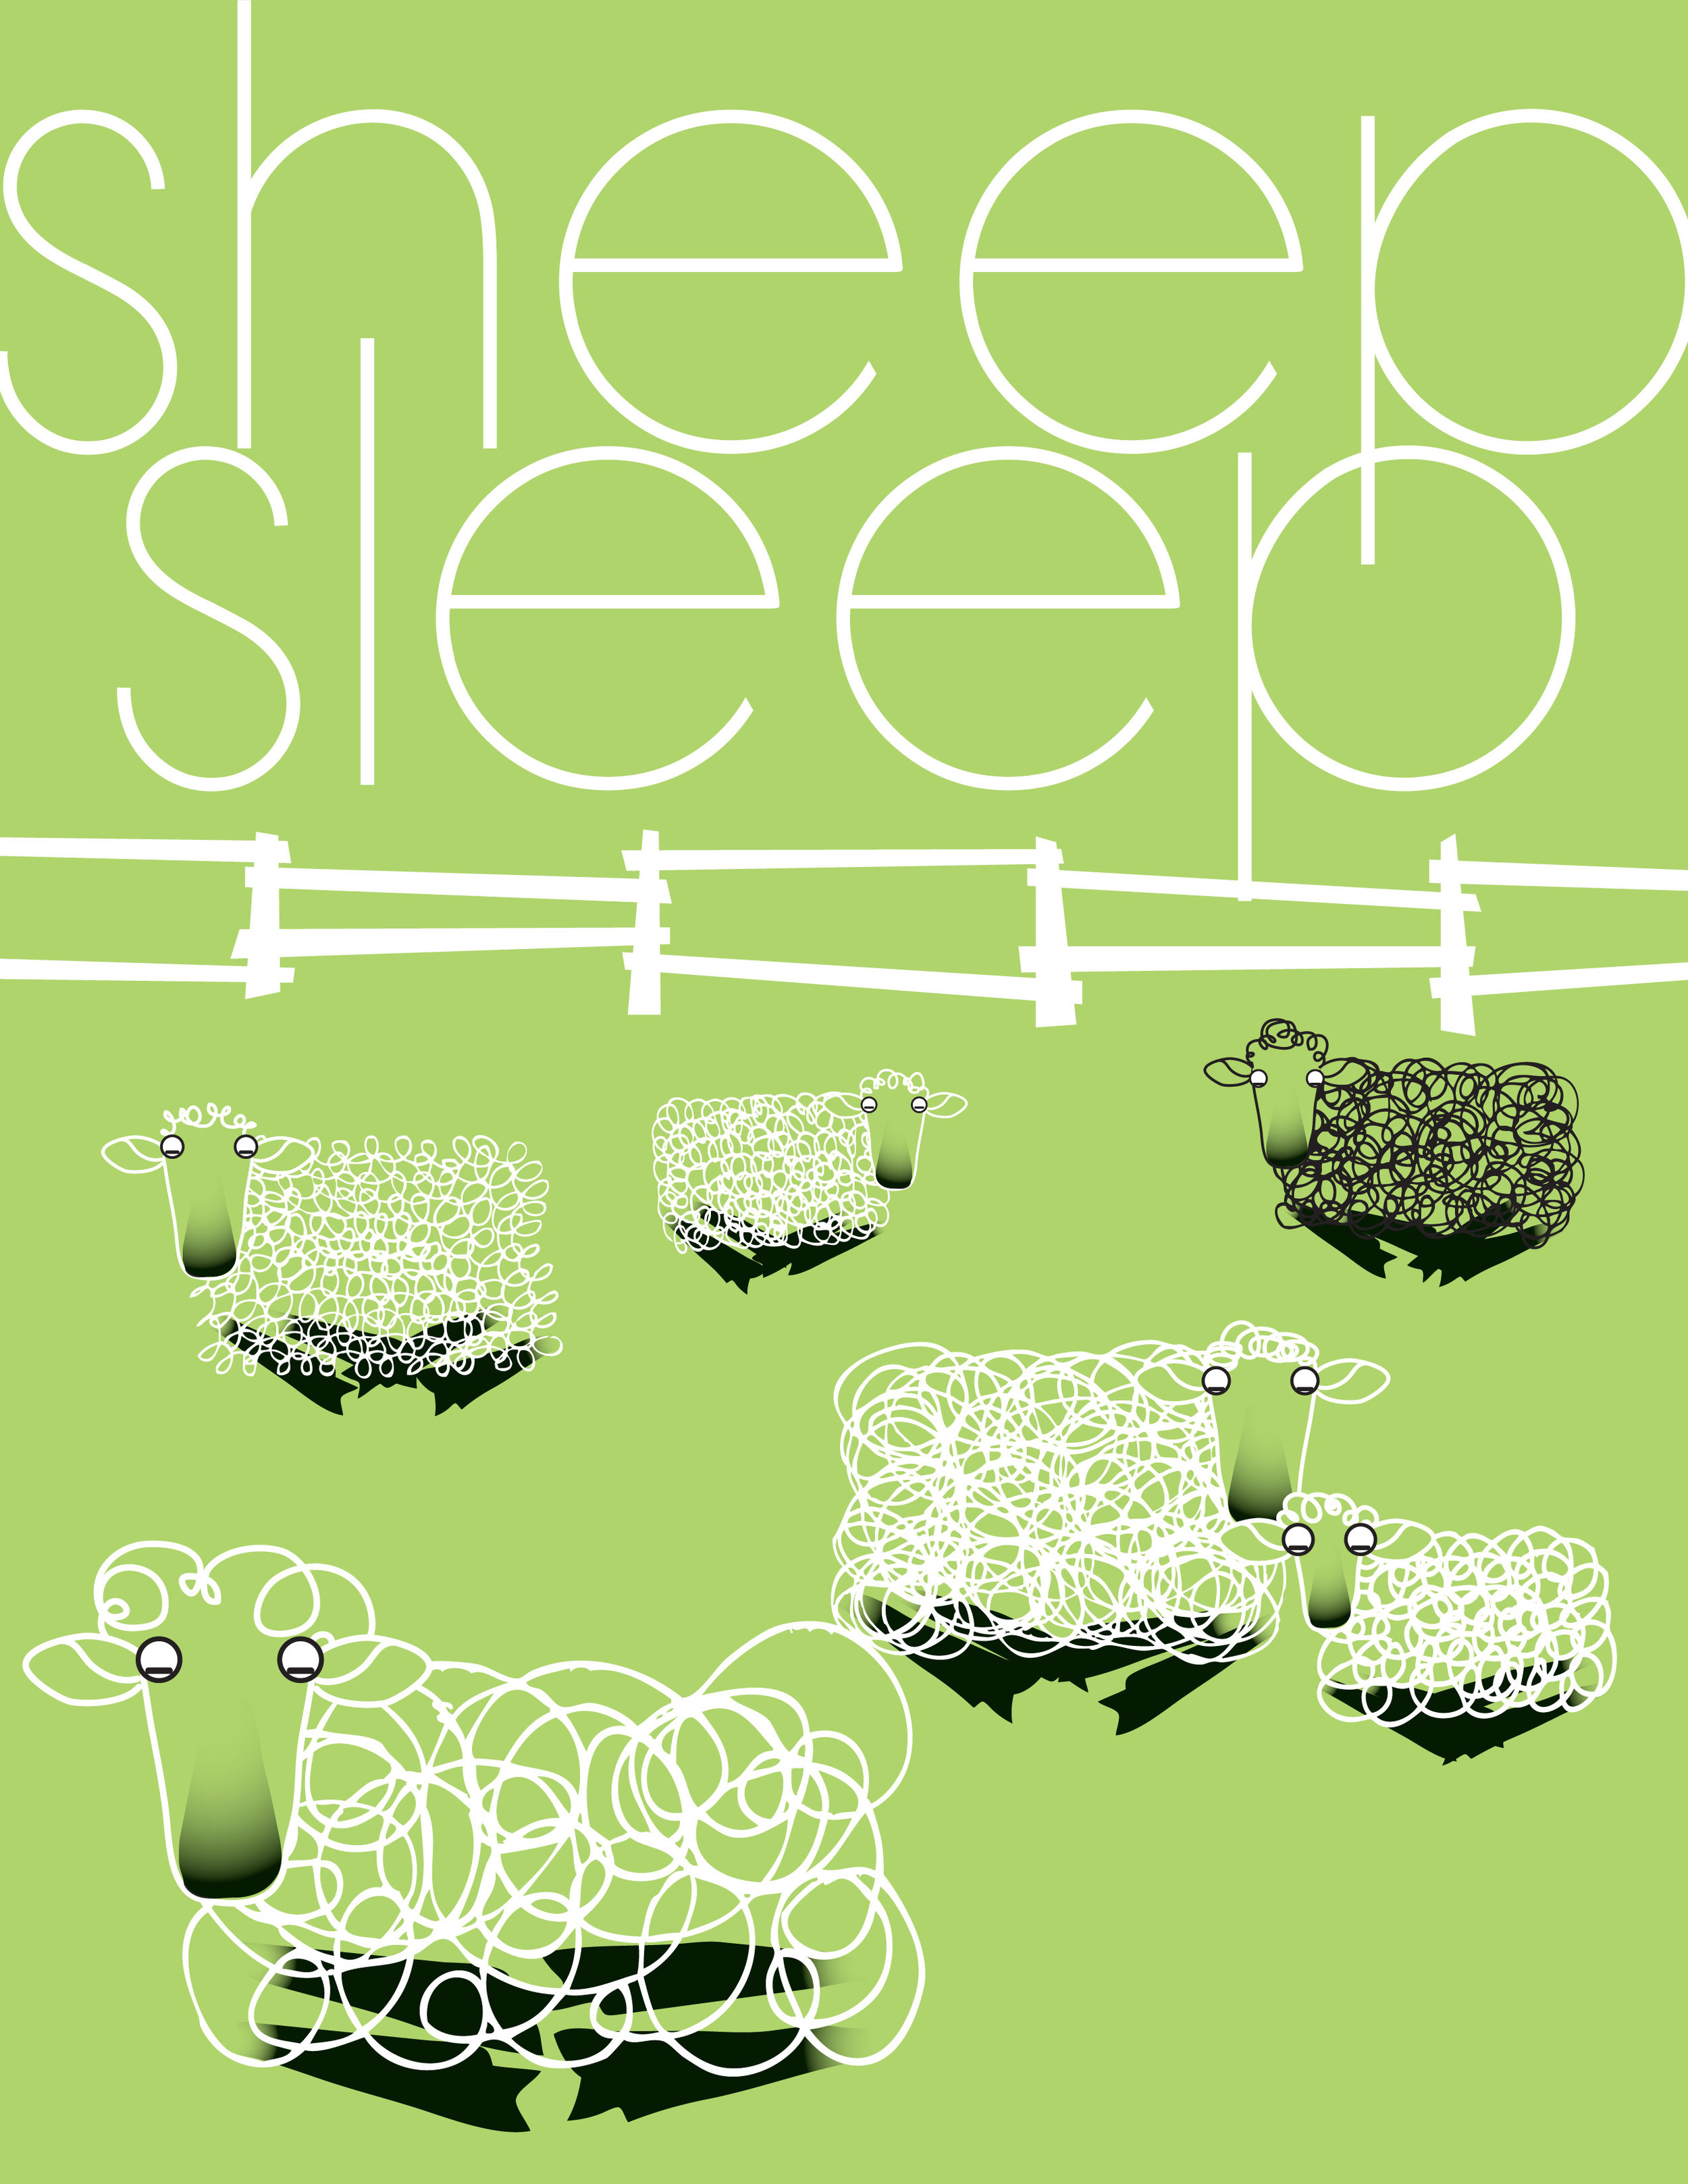 Sheep Sleep Book 2-14.jpg